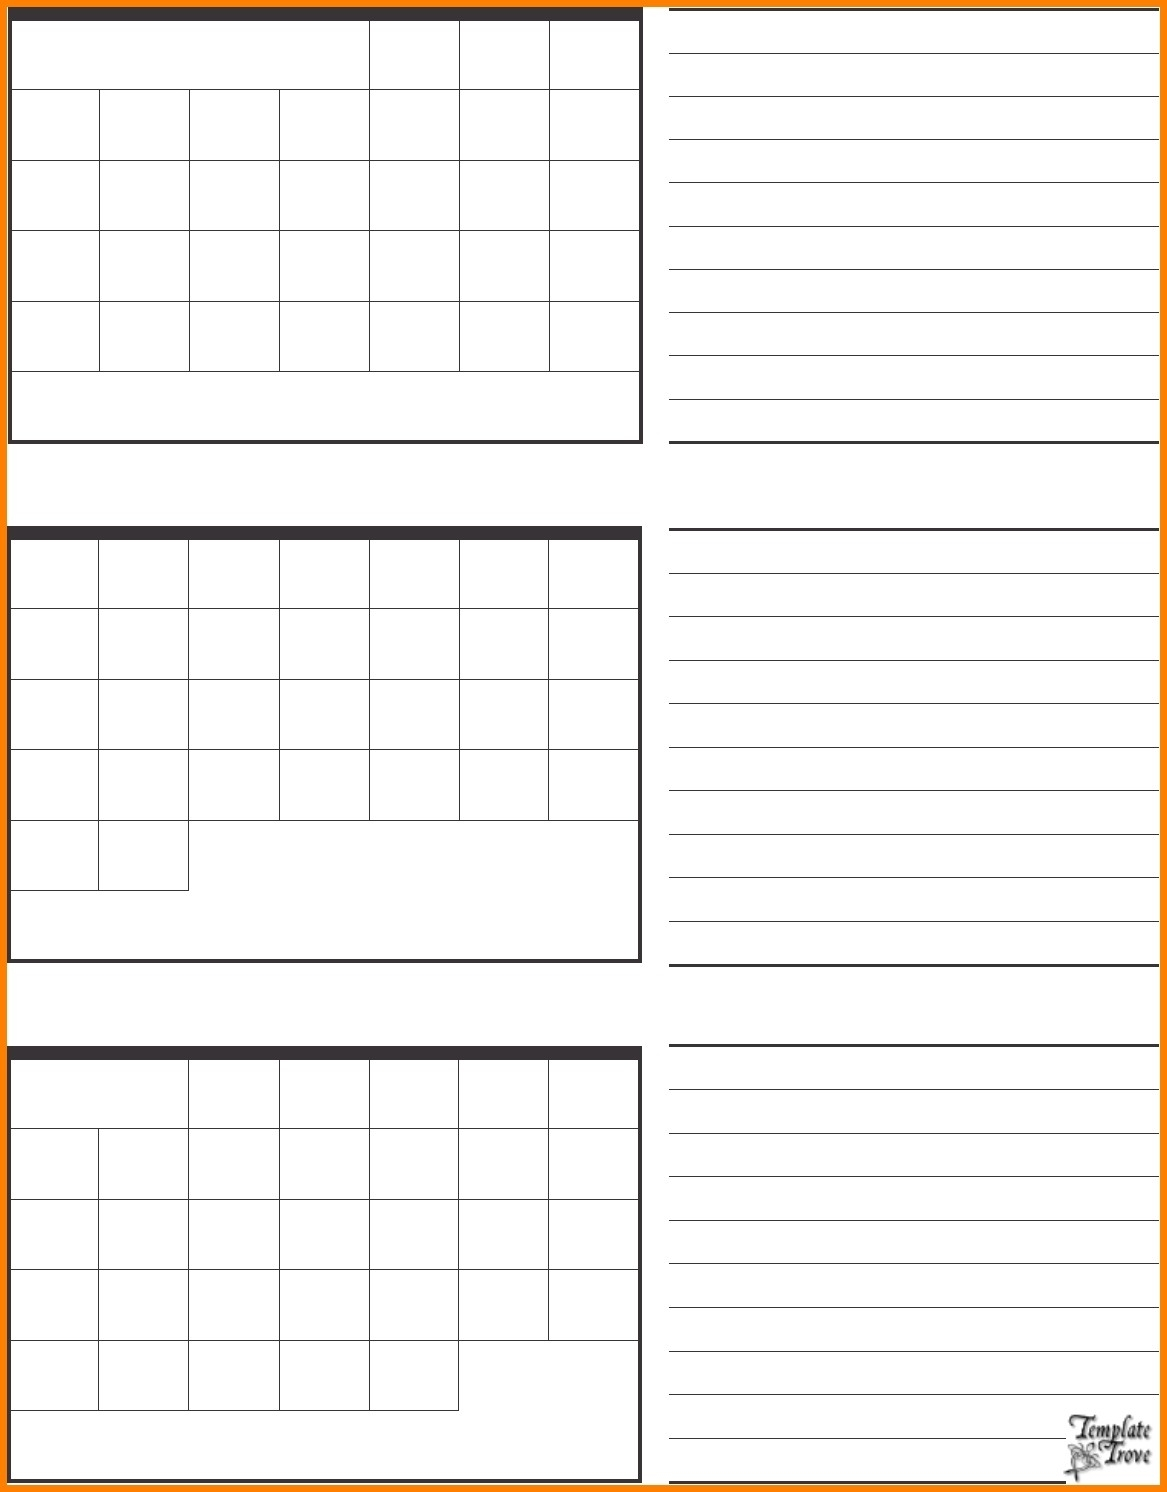 Printable 3 Month Calendar On One Page | Otohondalongan within 3 Month On One Page Printable